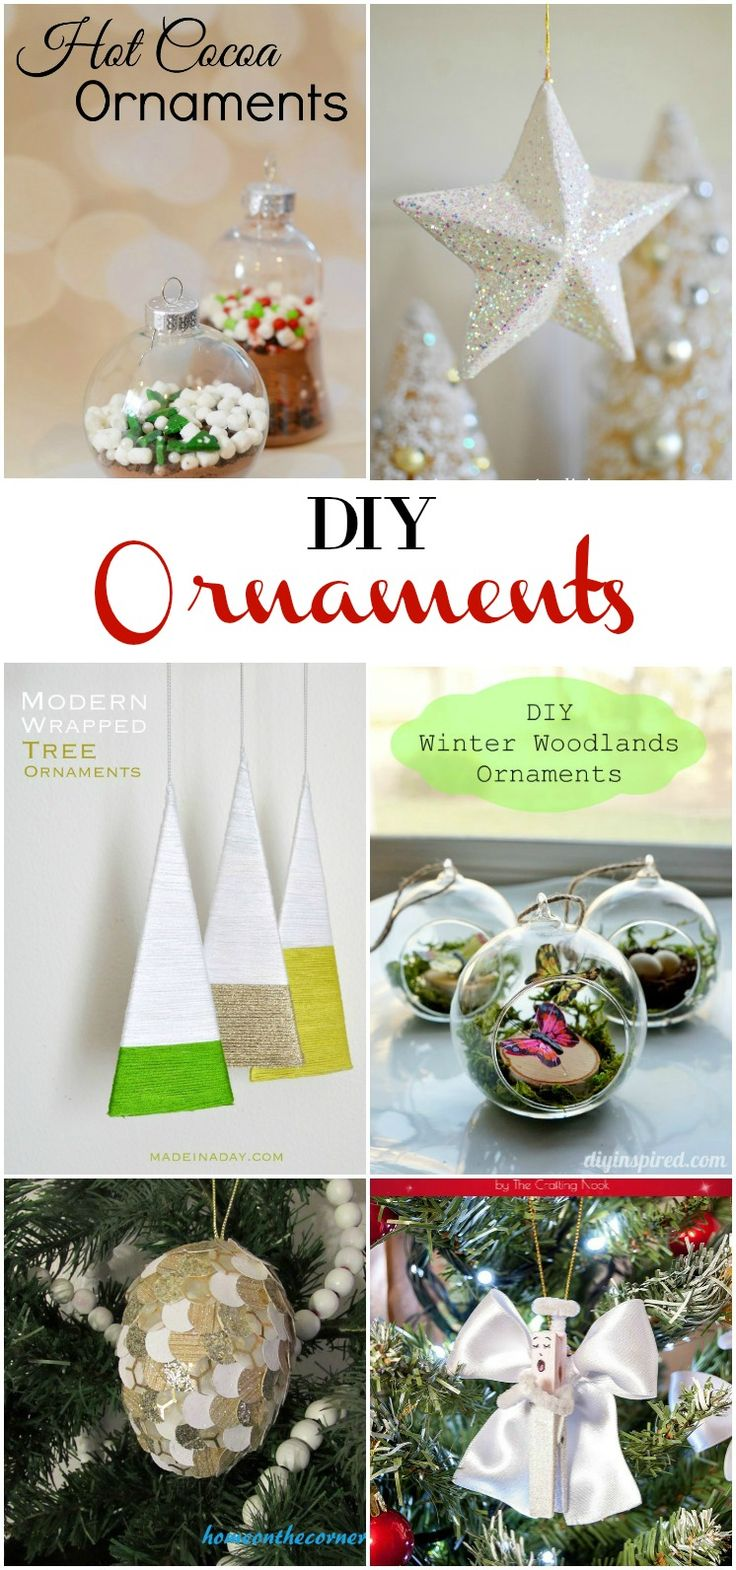 DIY Ornaments perfect for adorning any tree